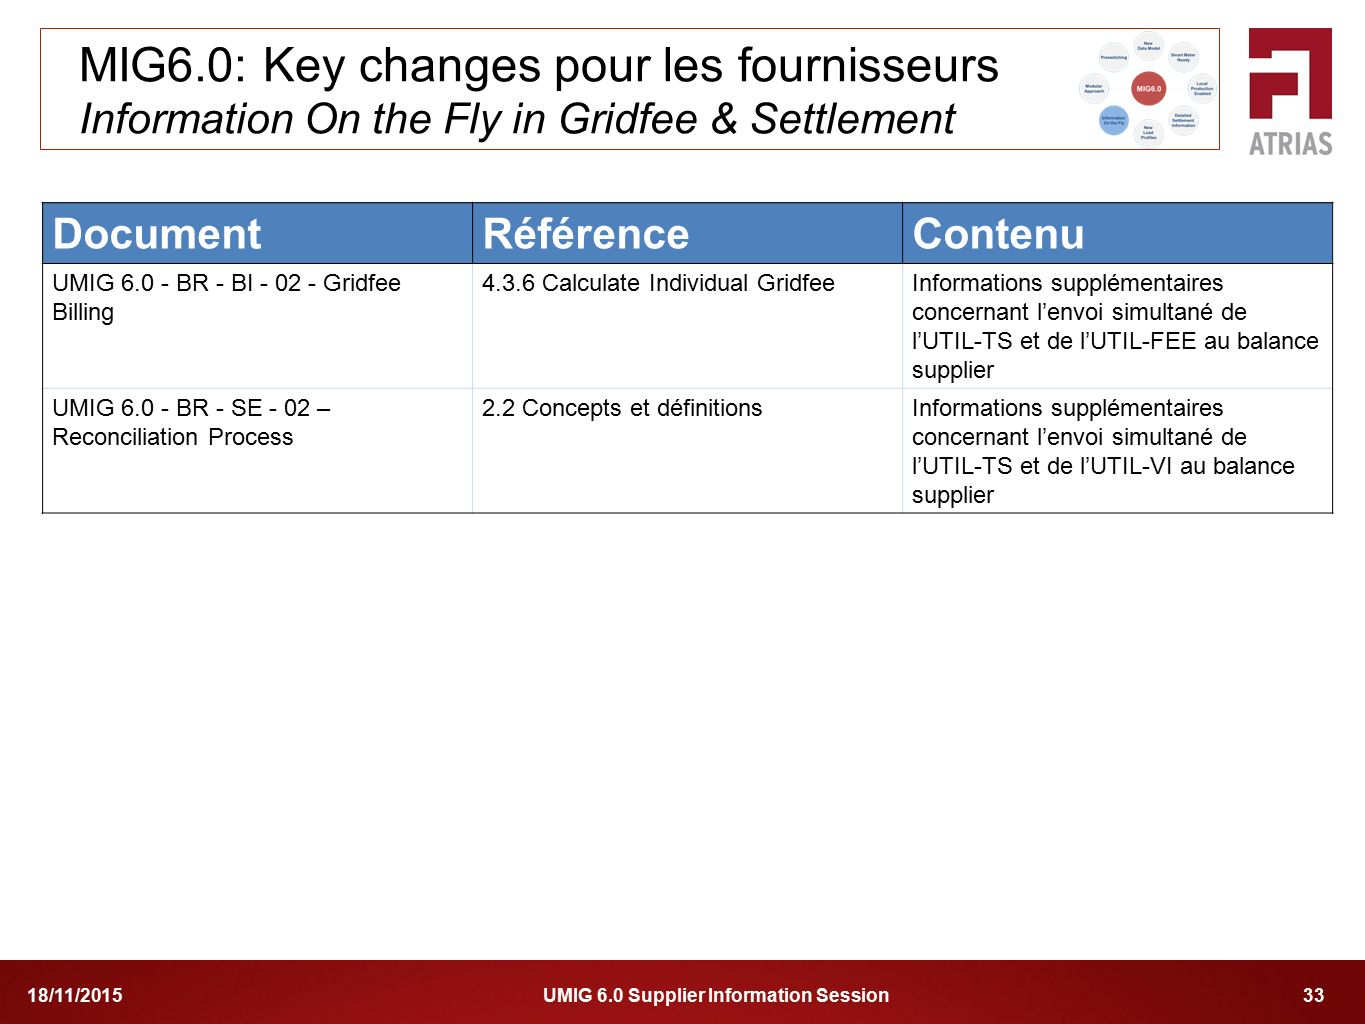 MIG6.0: Key changes pour les fournisseurs Information On the Fly in Gridfee & Settlement